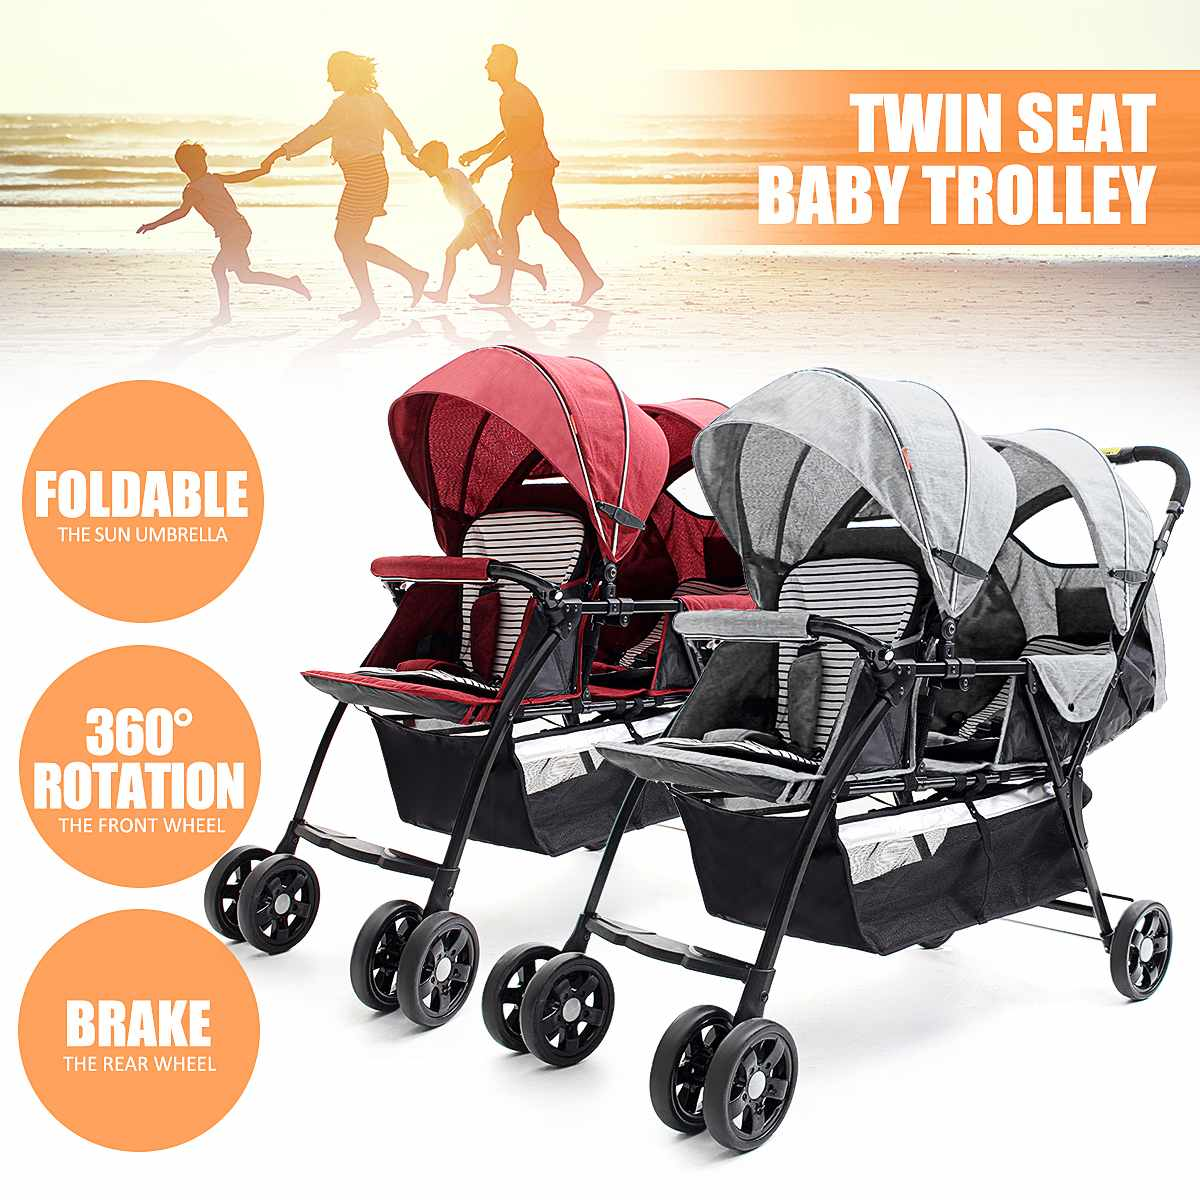 2 Seats Foldable Baby Trolley for Twins 360 Degree Rotation High Landscape Strollers for Baby Children Infant Pushchair2 Seats Foldable Baby Trolley for Twins 360 Degree Rotation High Landscape Strollers for Baby Children Infant Pushchair